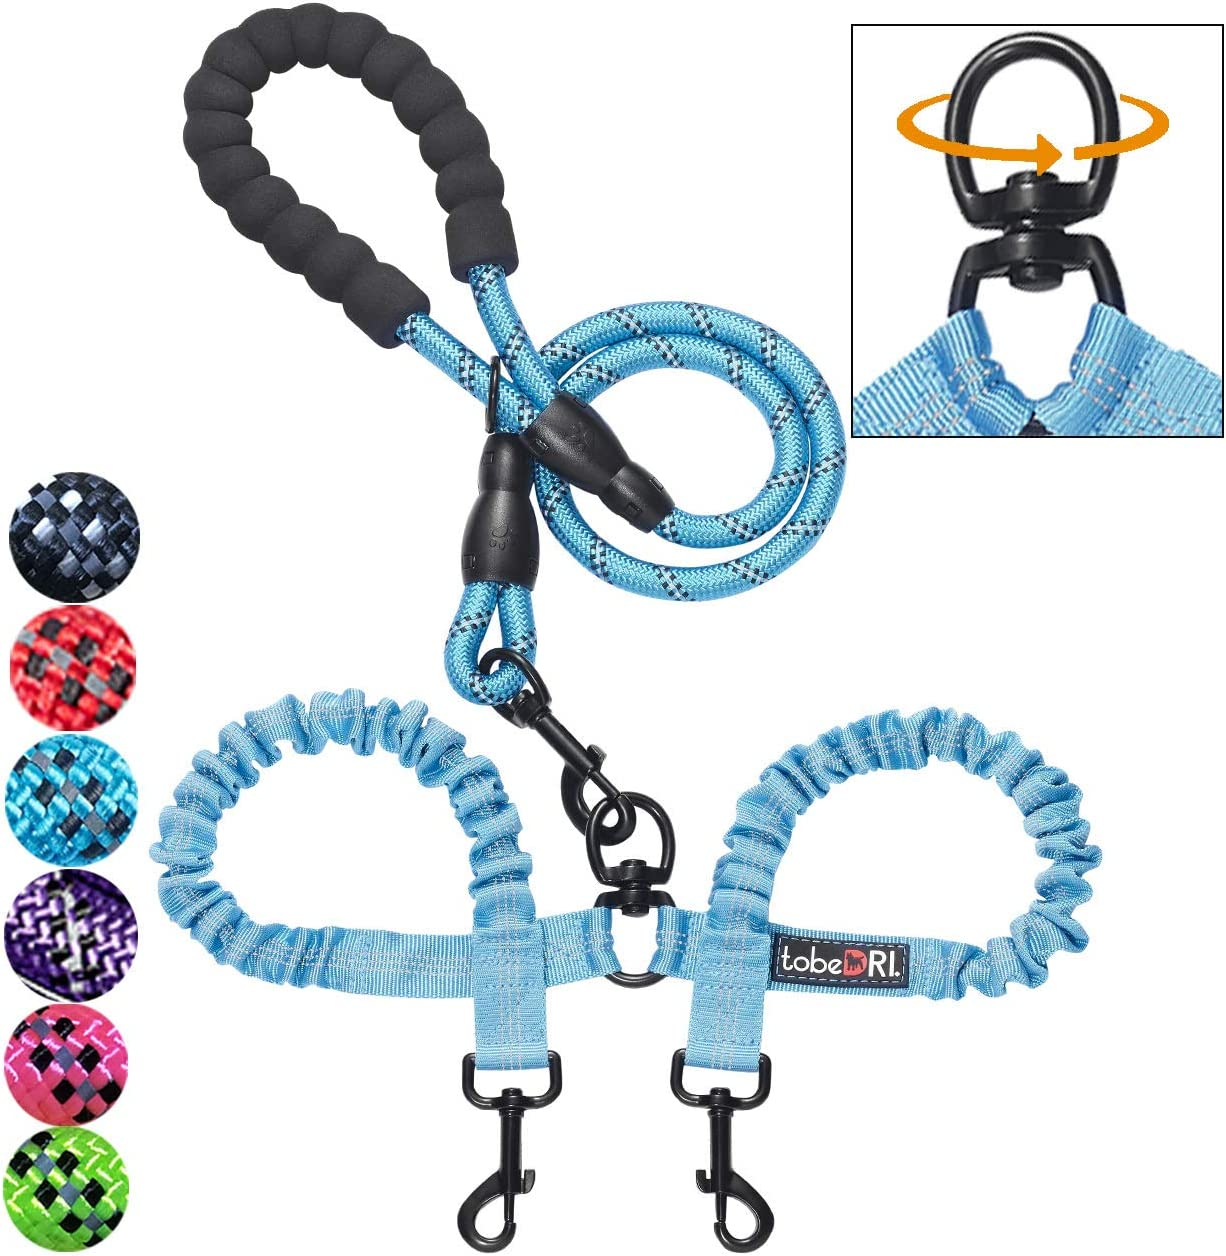 tobeDRI Comfortable Dual Dog Leash Tangle Free with Shock Absorbing Bungee Reflective 2 Dog Leashes for Large Medium Small Dogs 71ZTqSEiUUL